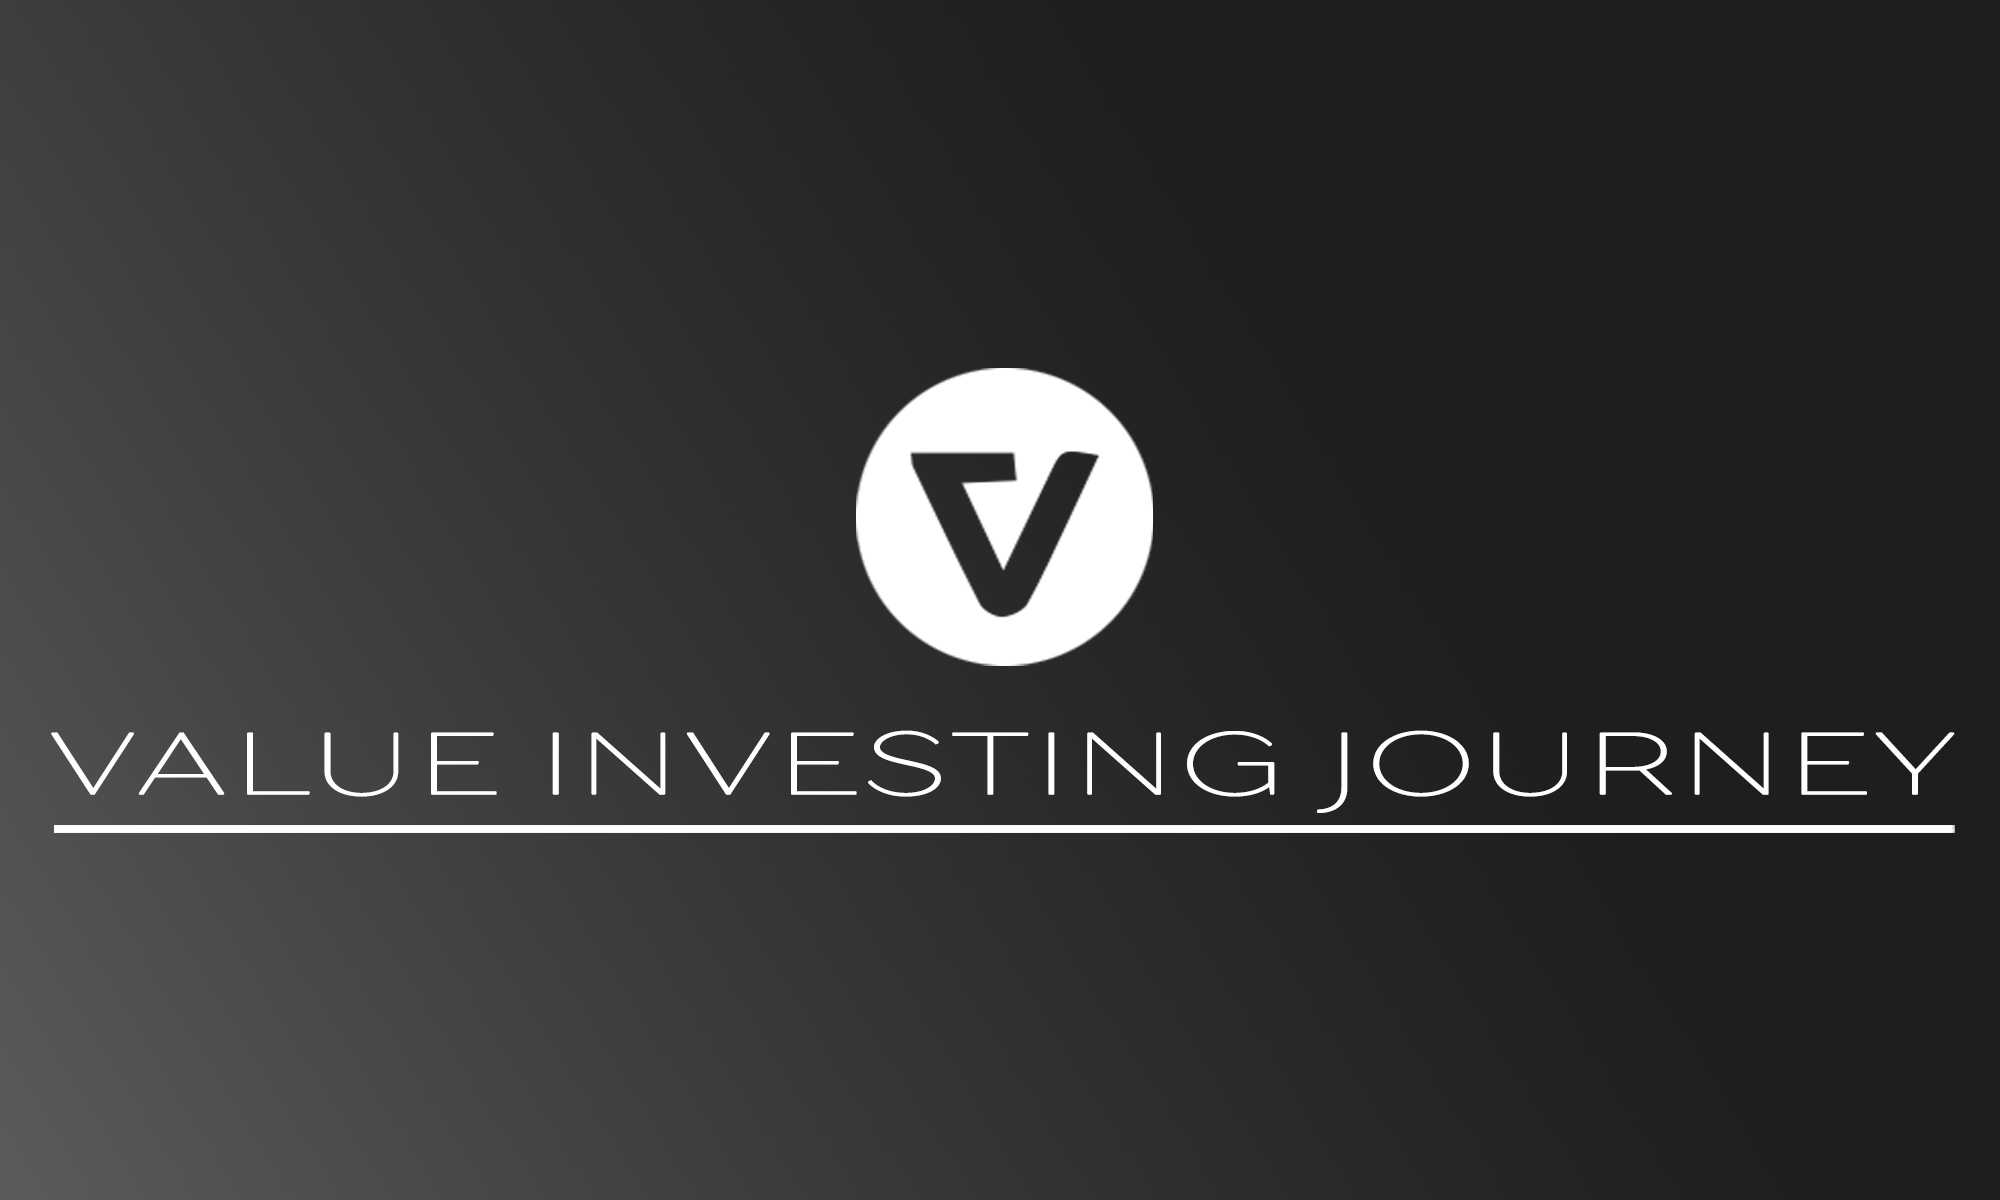 Value Investing Journey